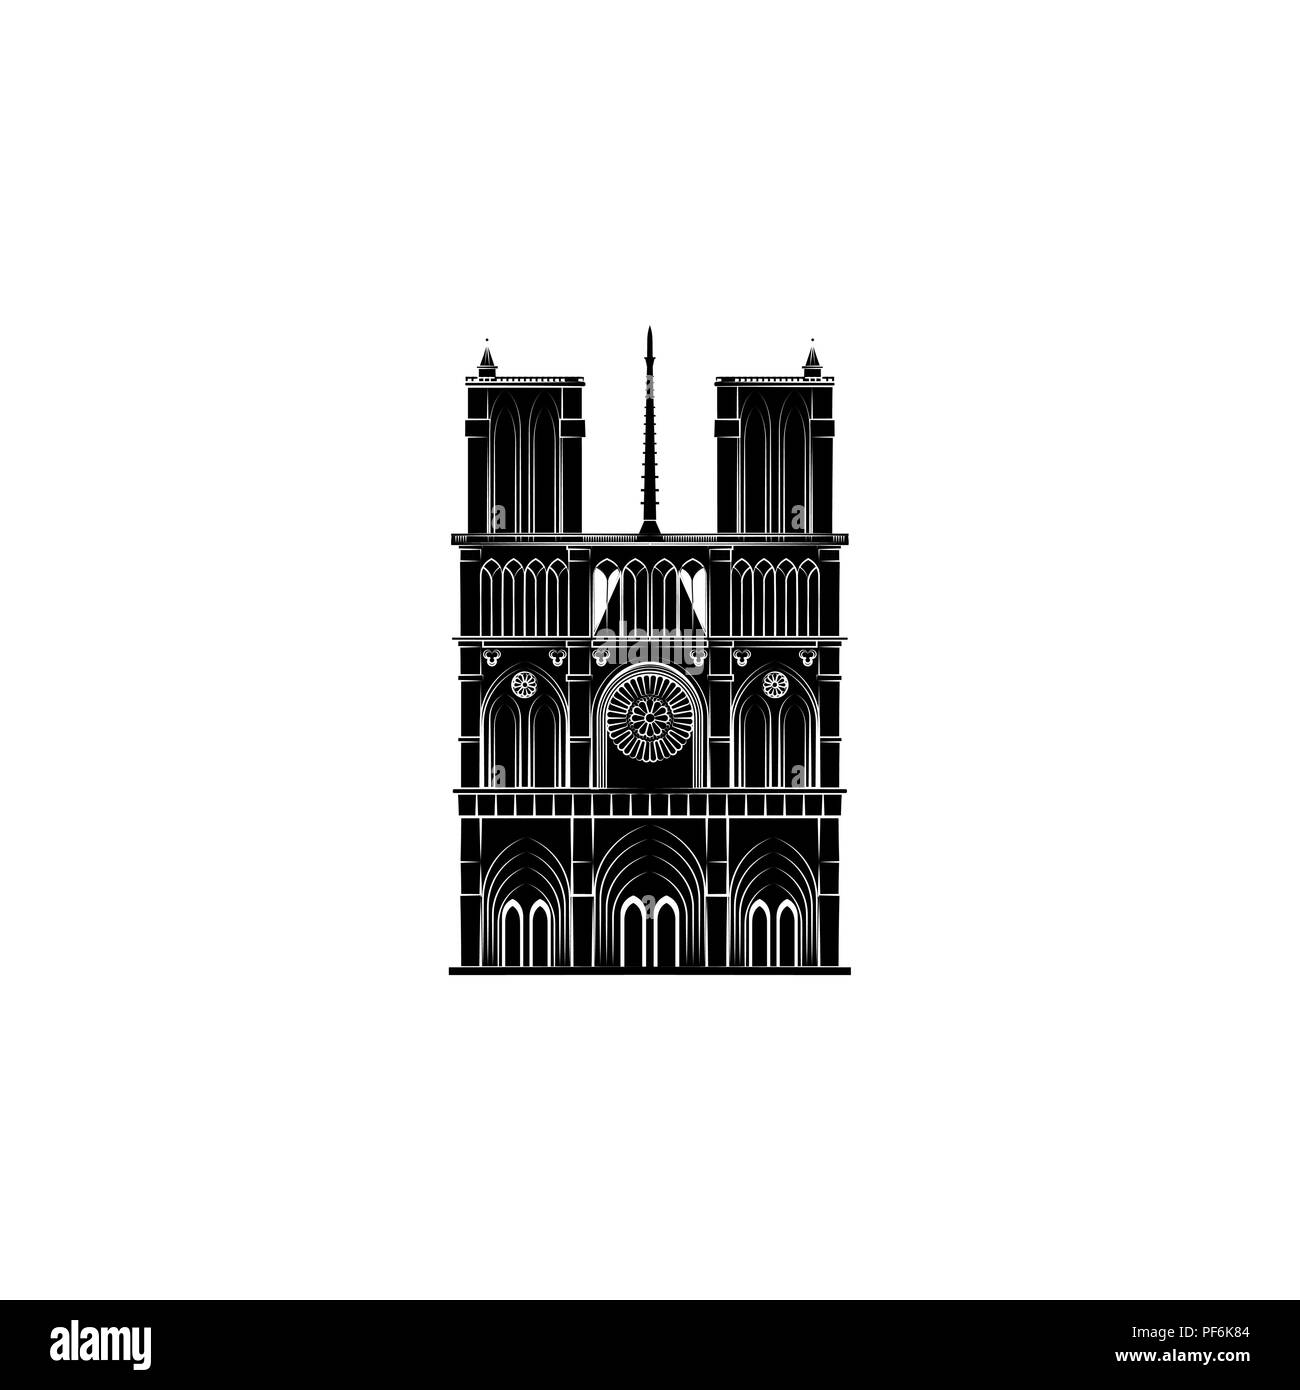 Notre Dame Cathedral black on white background - Stock Image